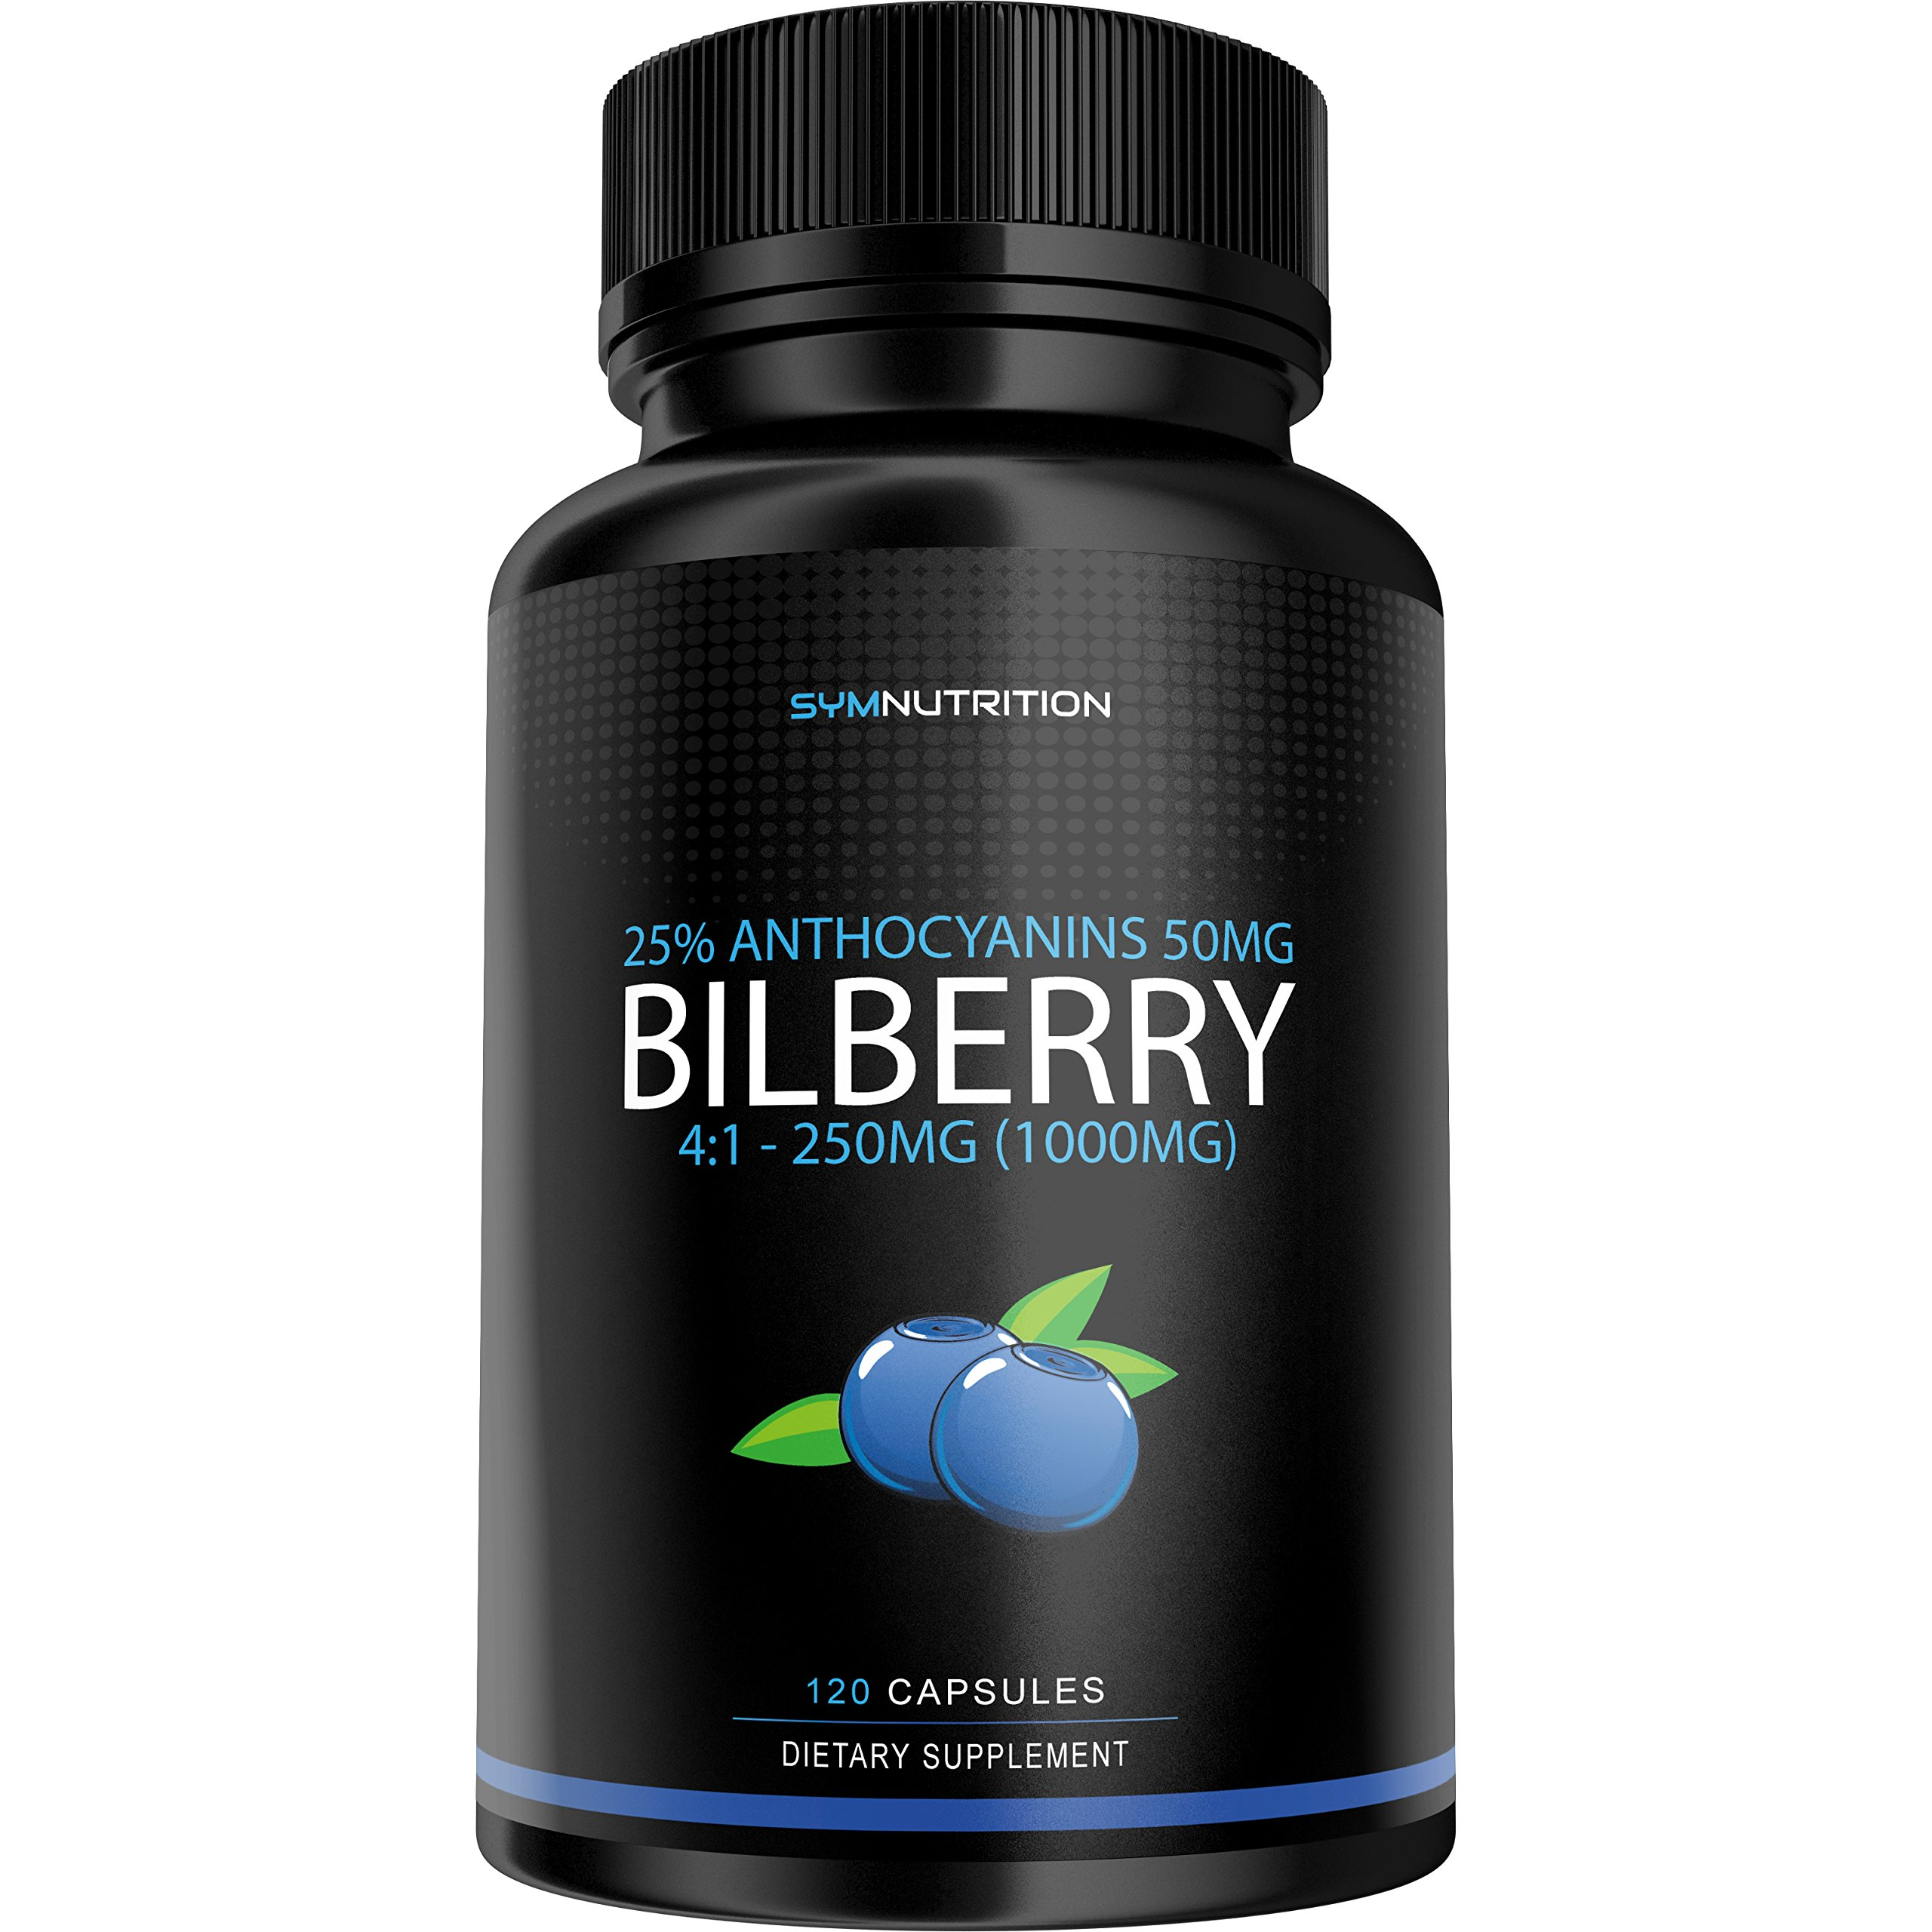 Bilberry Extract 1000mg, 25% Anthocyanins 50mg - 120 Count | European Blueberry | Taken for its Ability to Support Healthy Vision, Memory & Cognition | V-Capsules